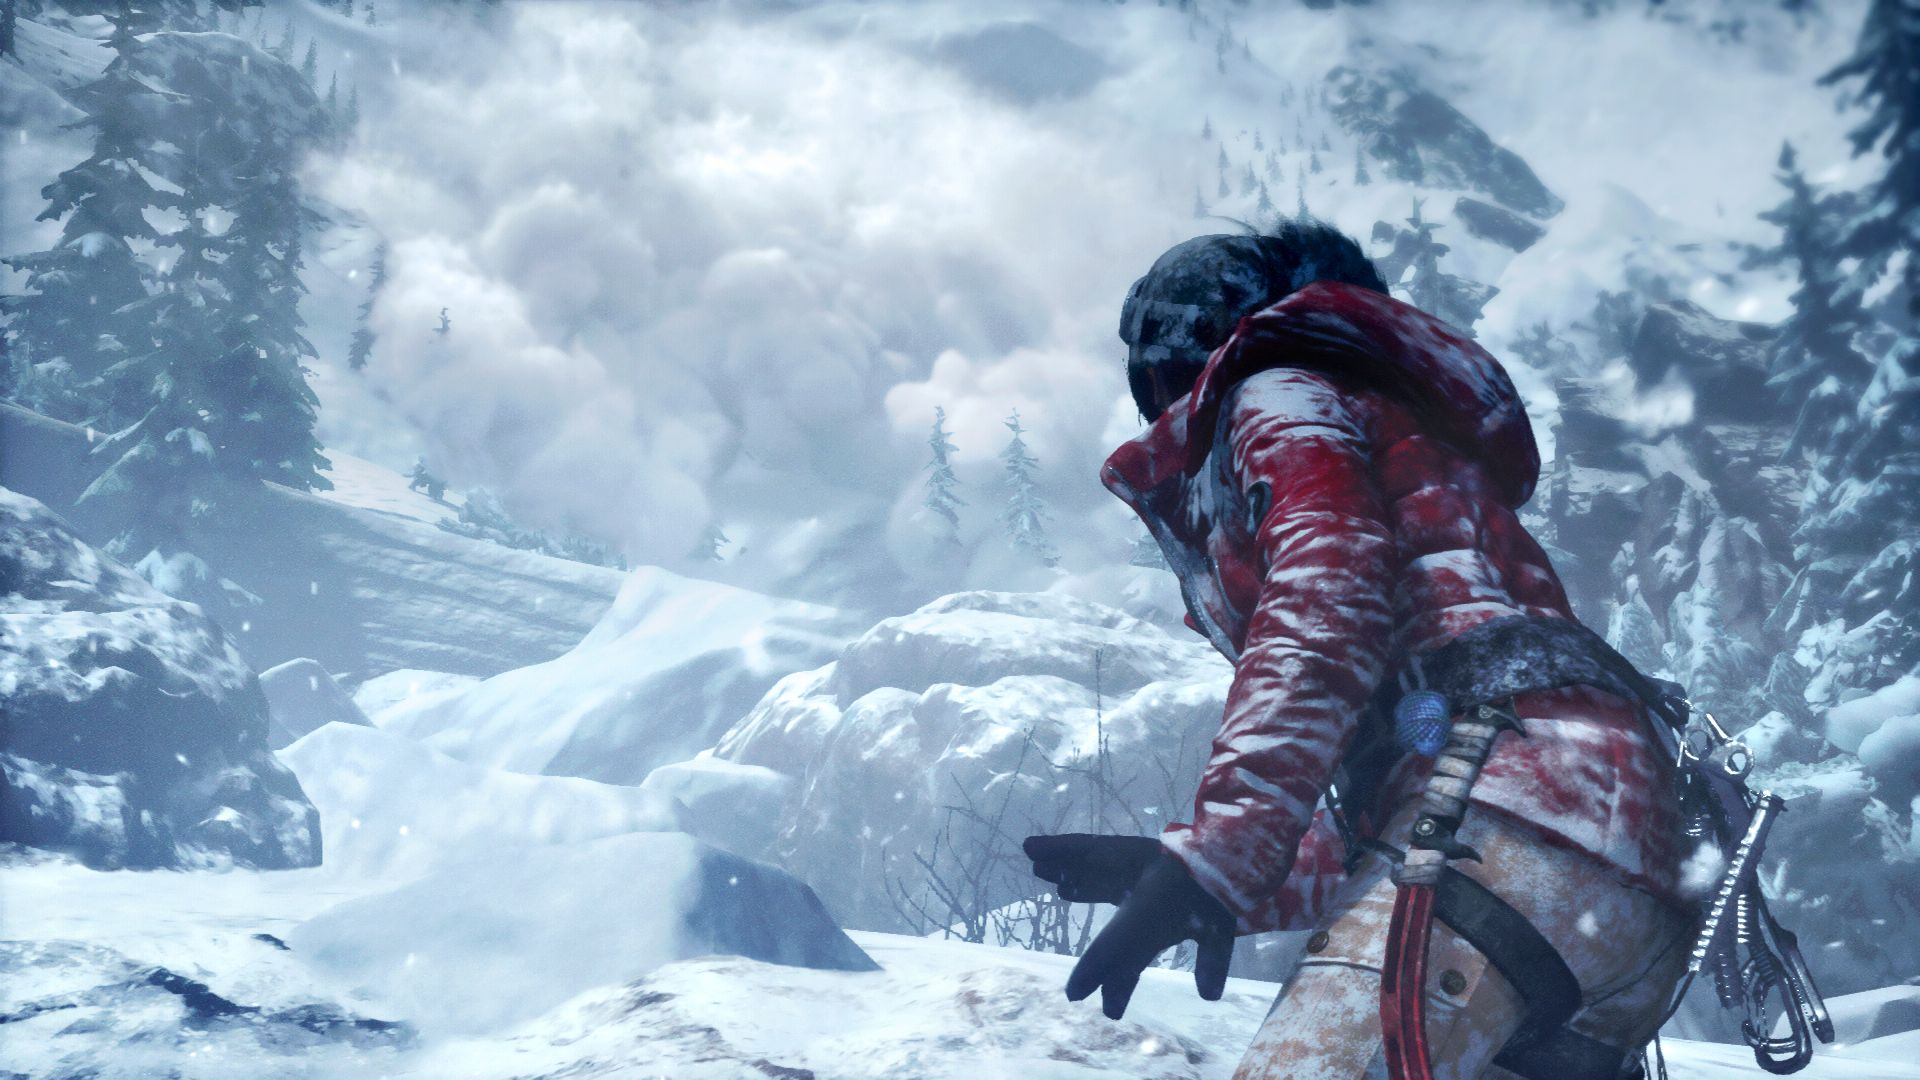 rise of the tomb raider 160215 11